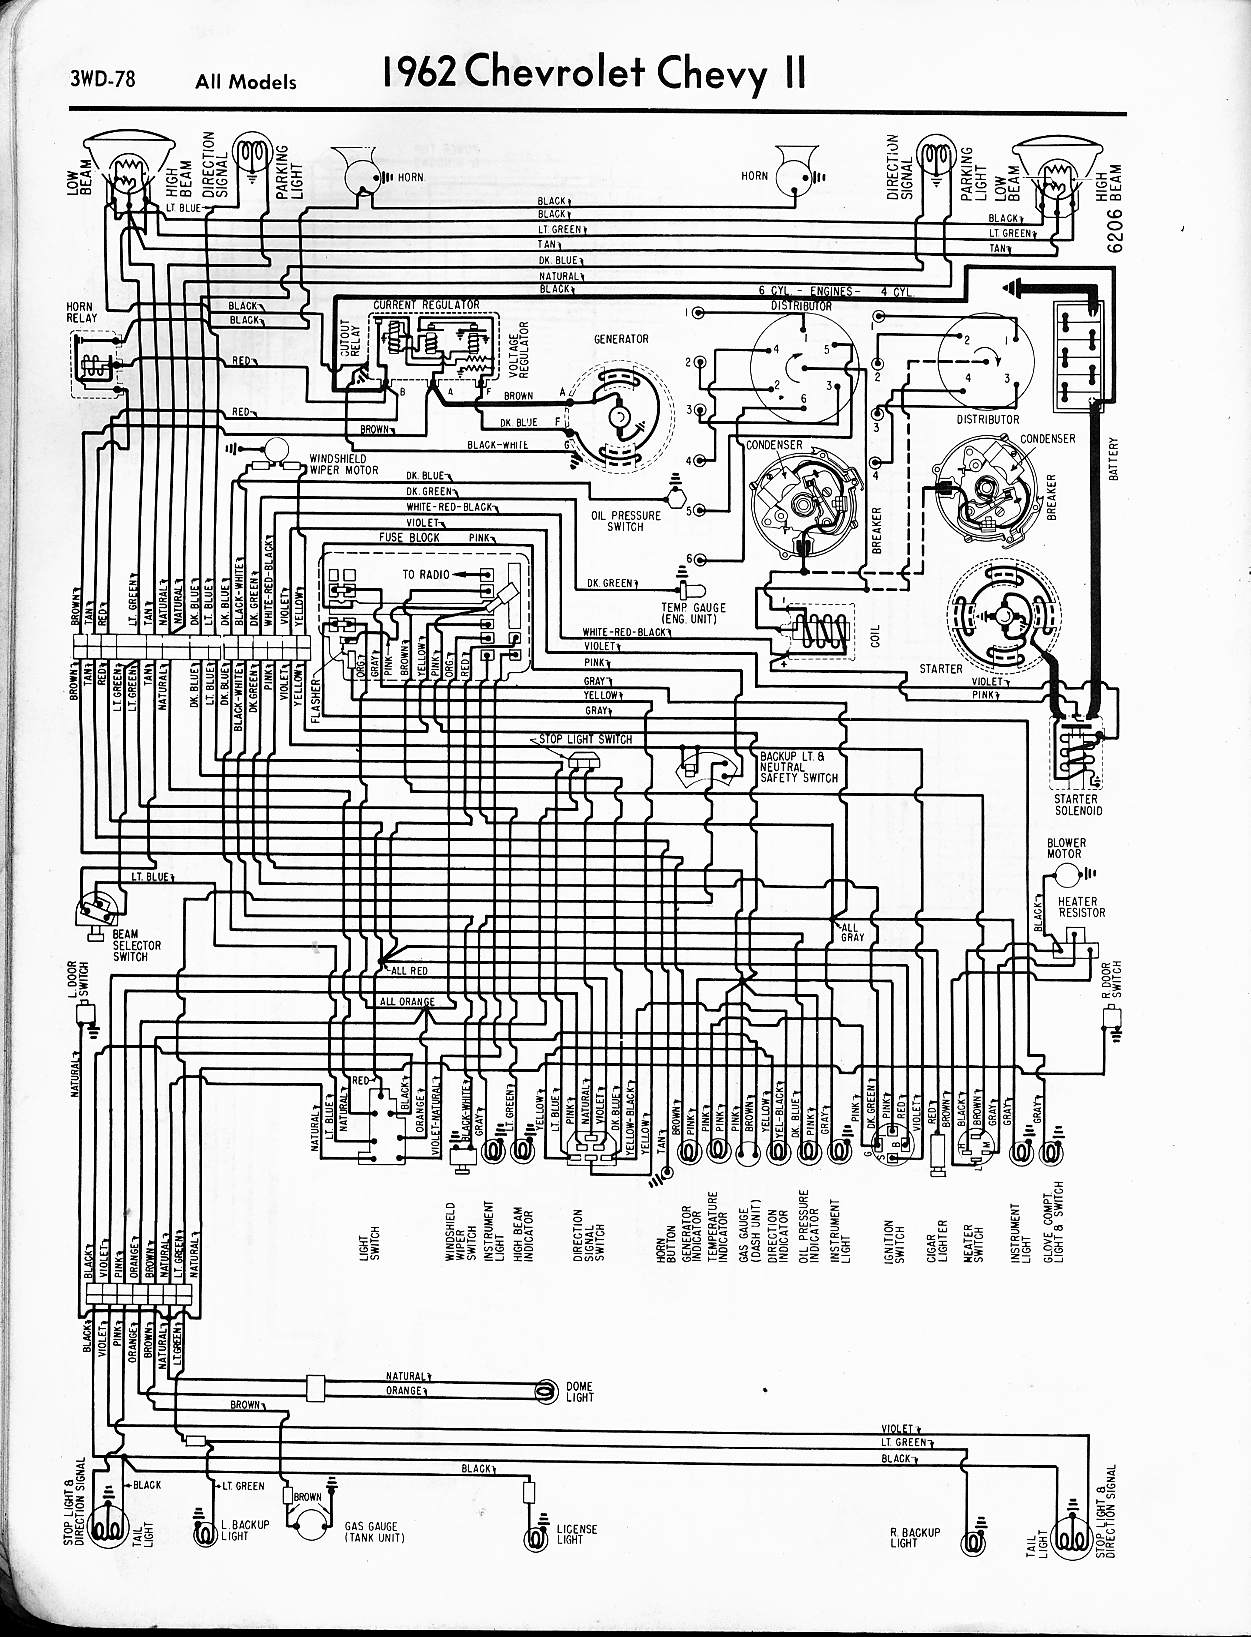 1967 corvette wiring diagram 5 7 bandidos kastellaun de \u202264 impala wiring harness wiring diagram data rh 16 wnt motorik2017 de 1968 corvette wiring diagram